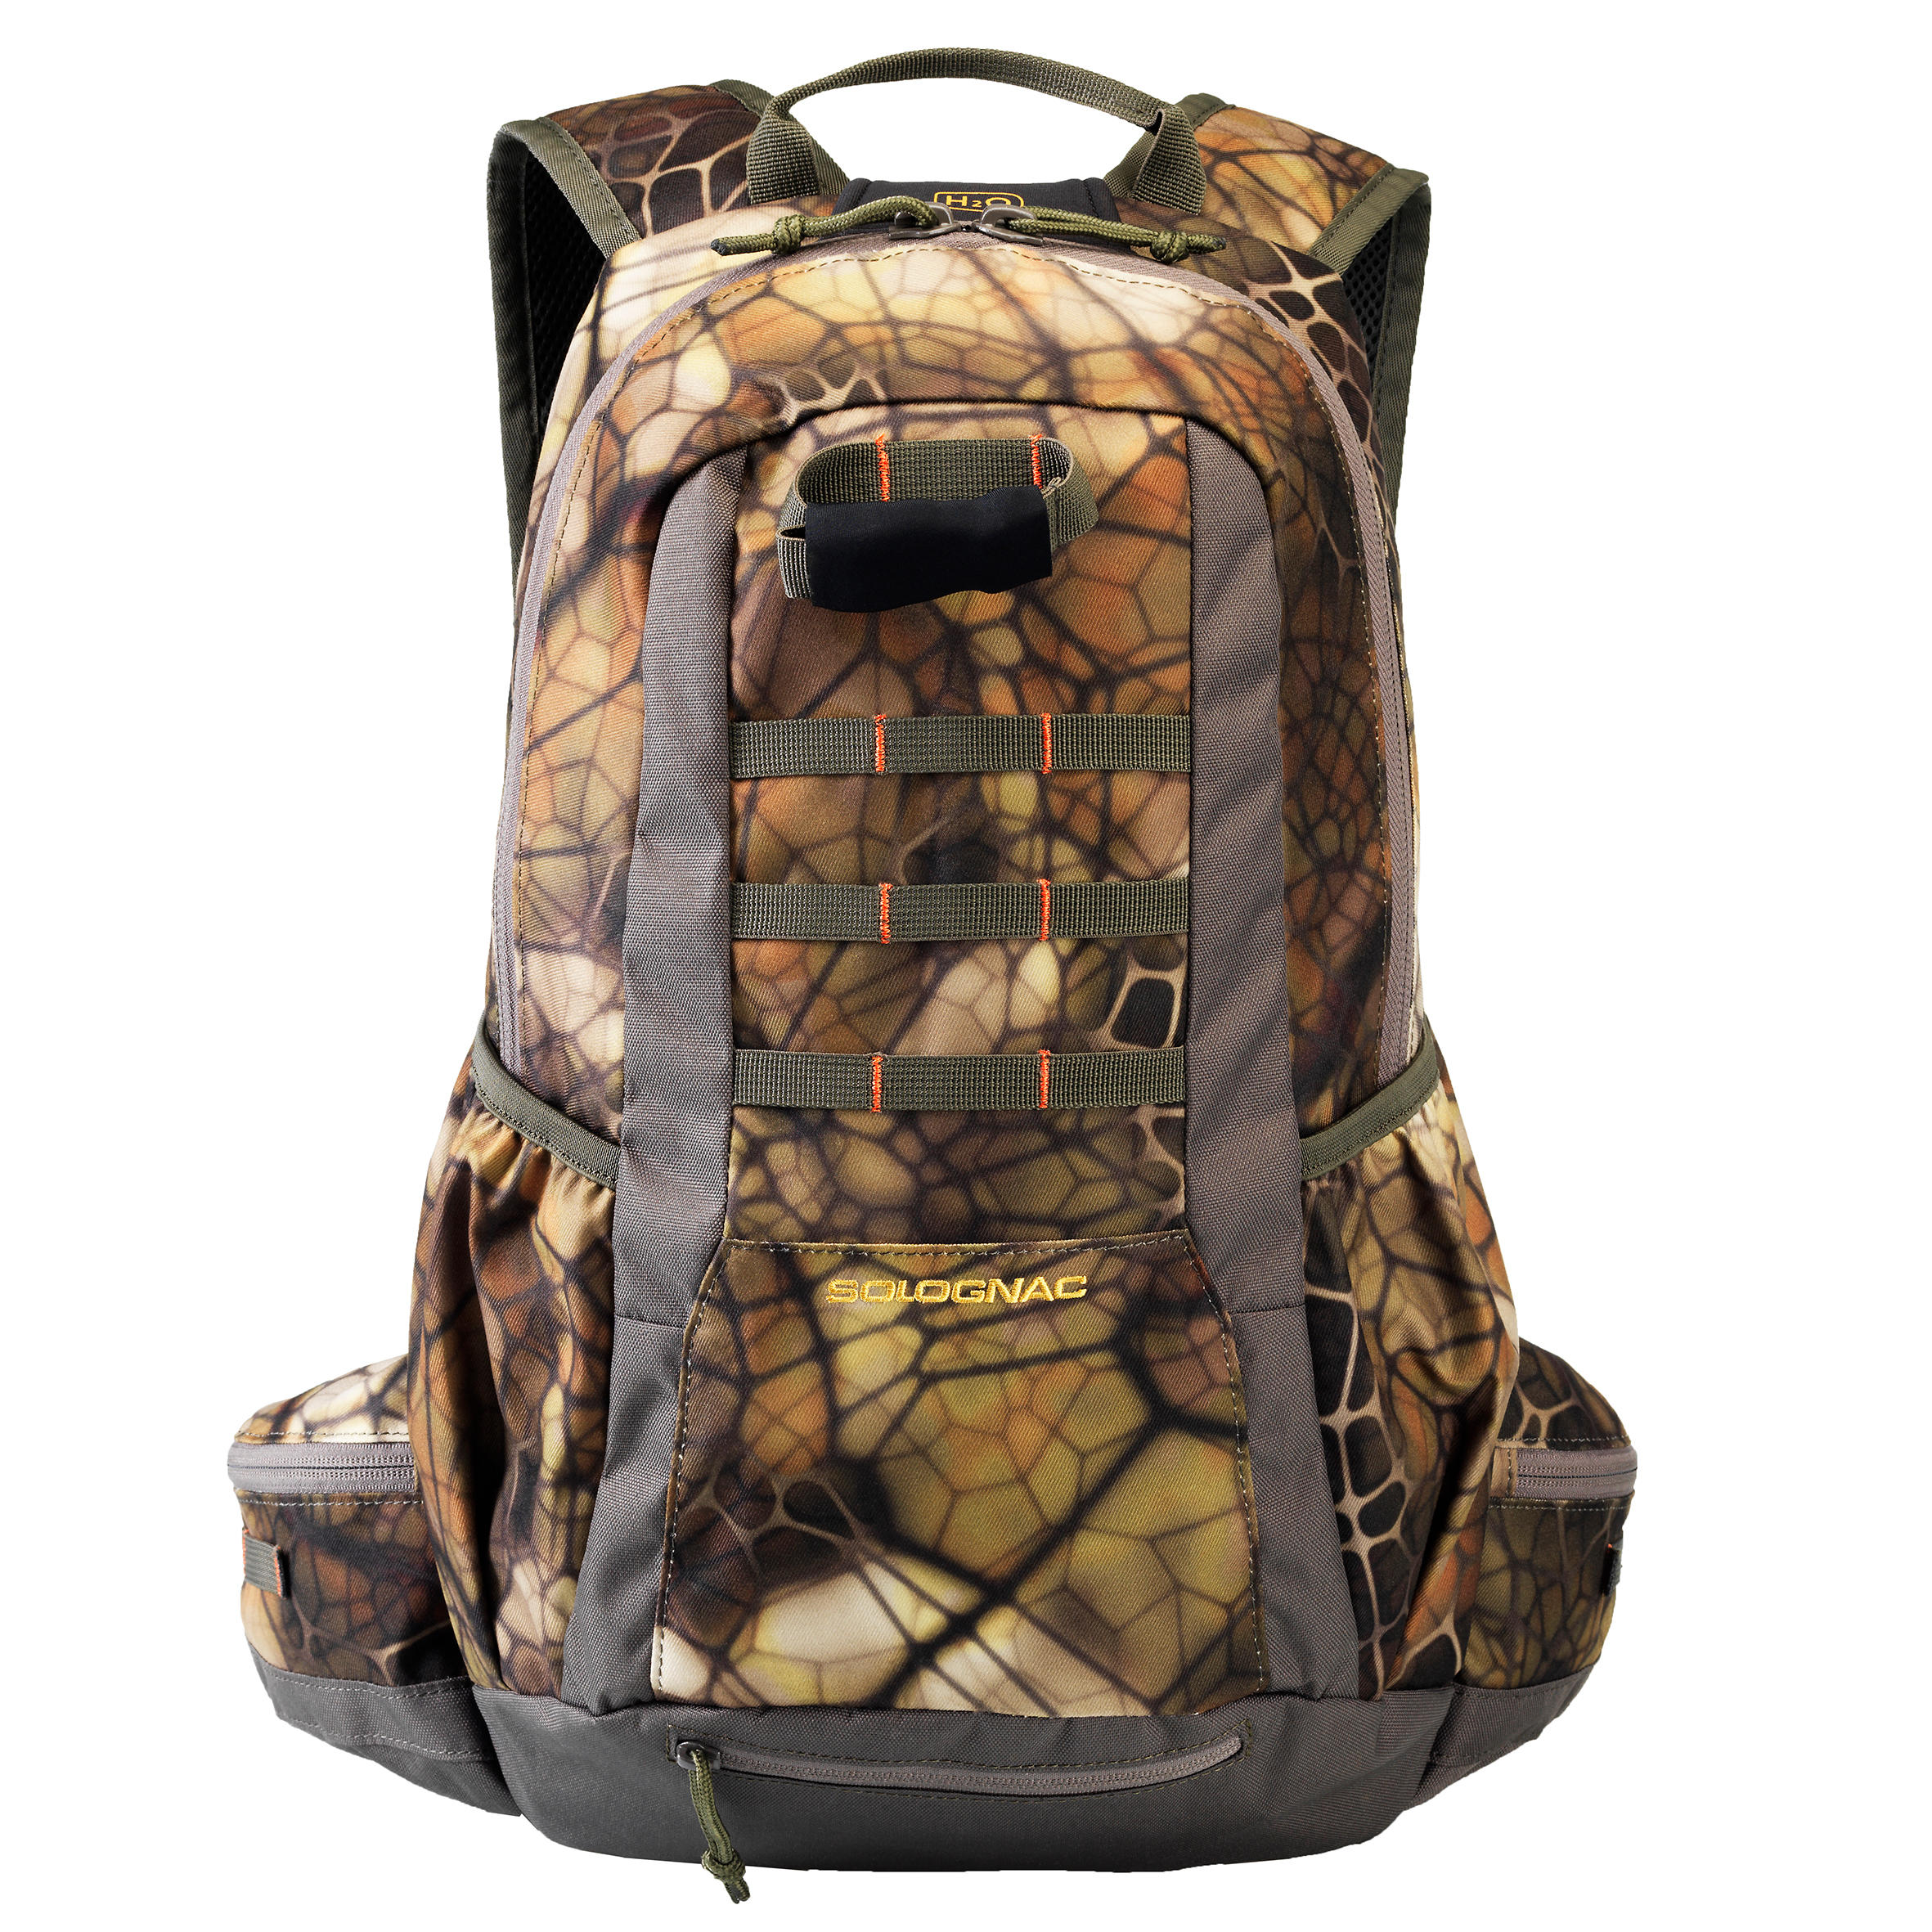 Wildlife Discovery X-Acc Backpack 20 Litre Xtralight Camo